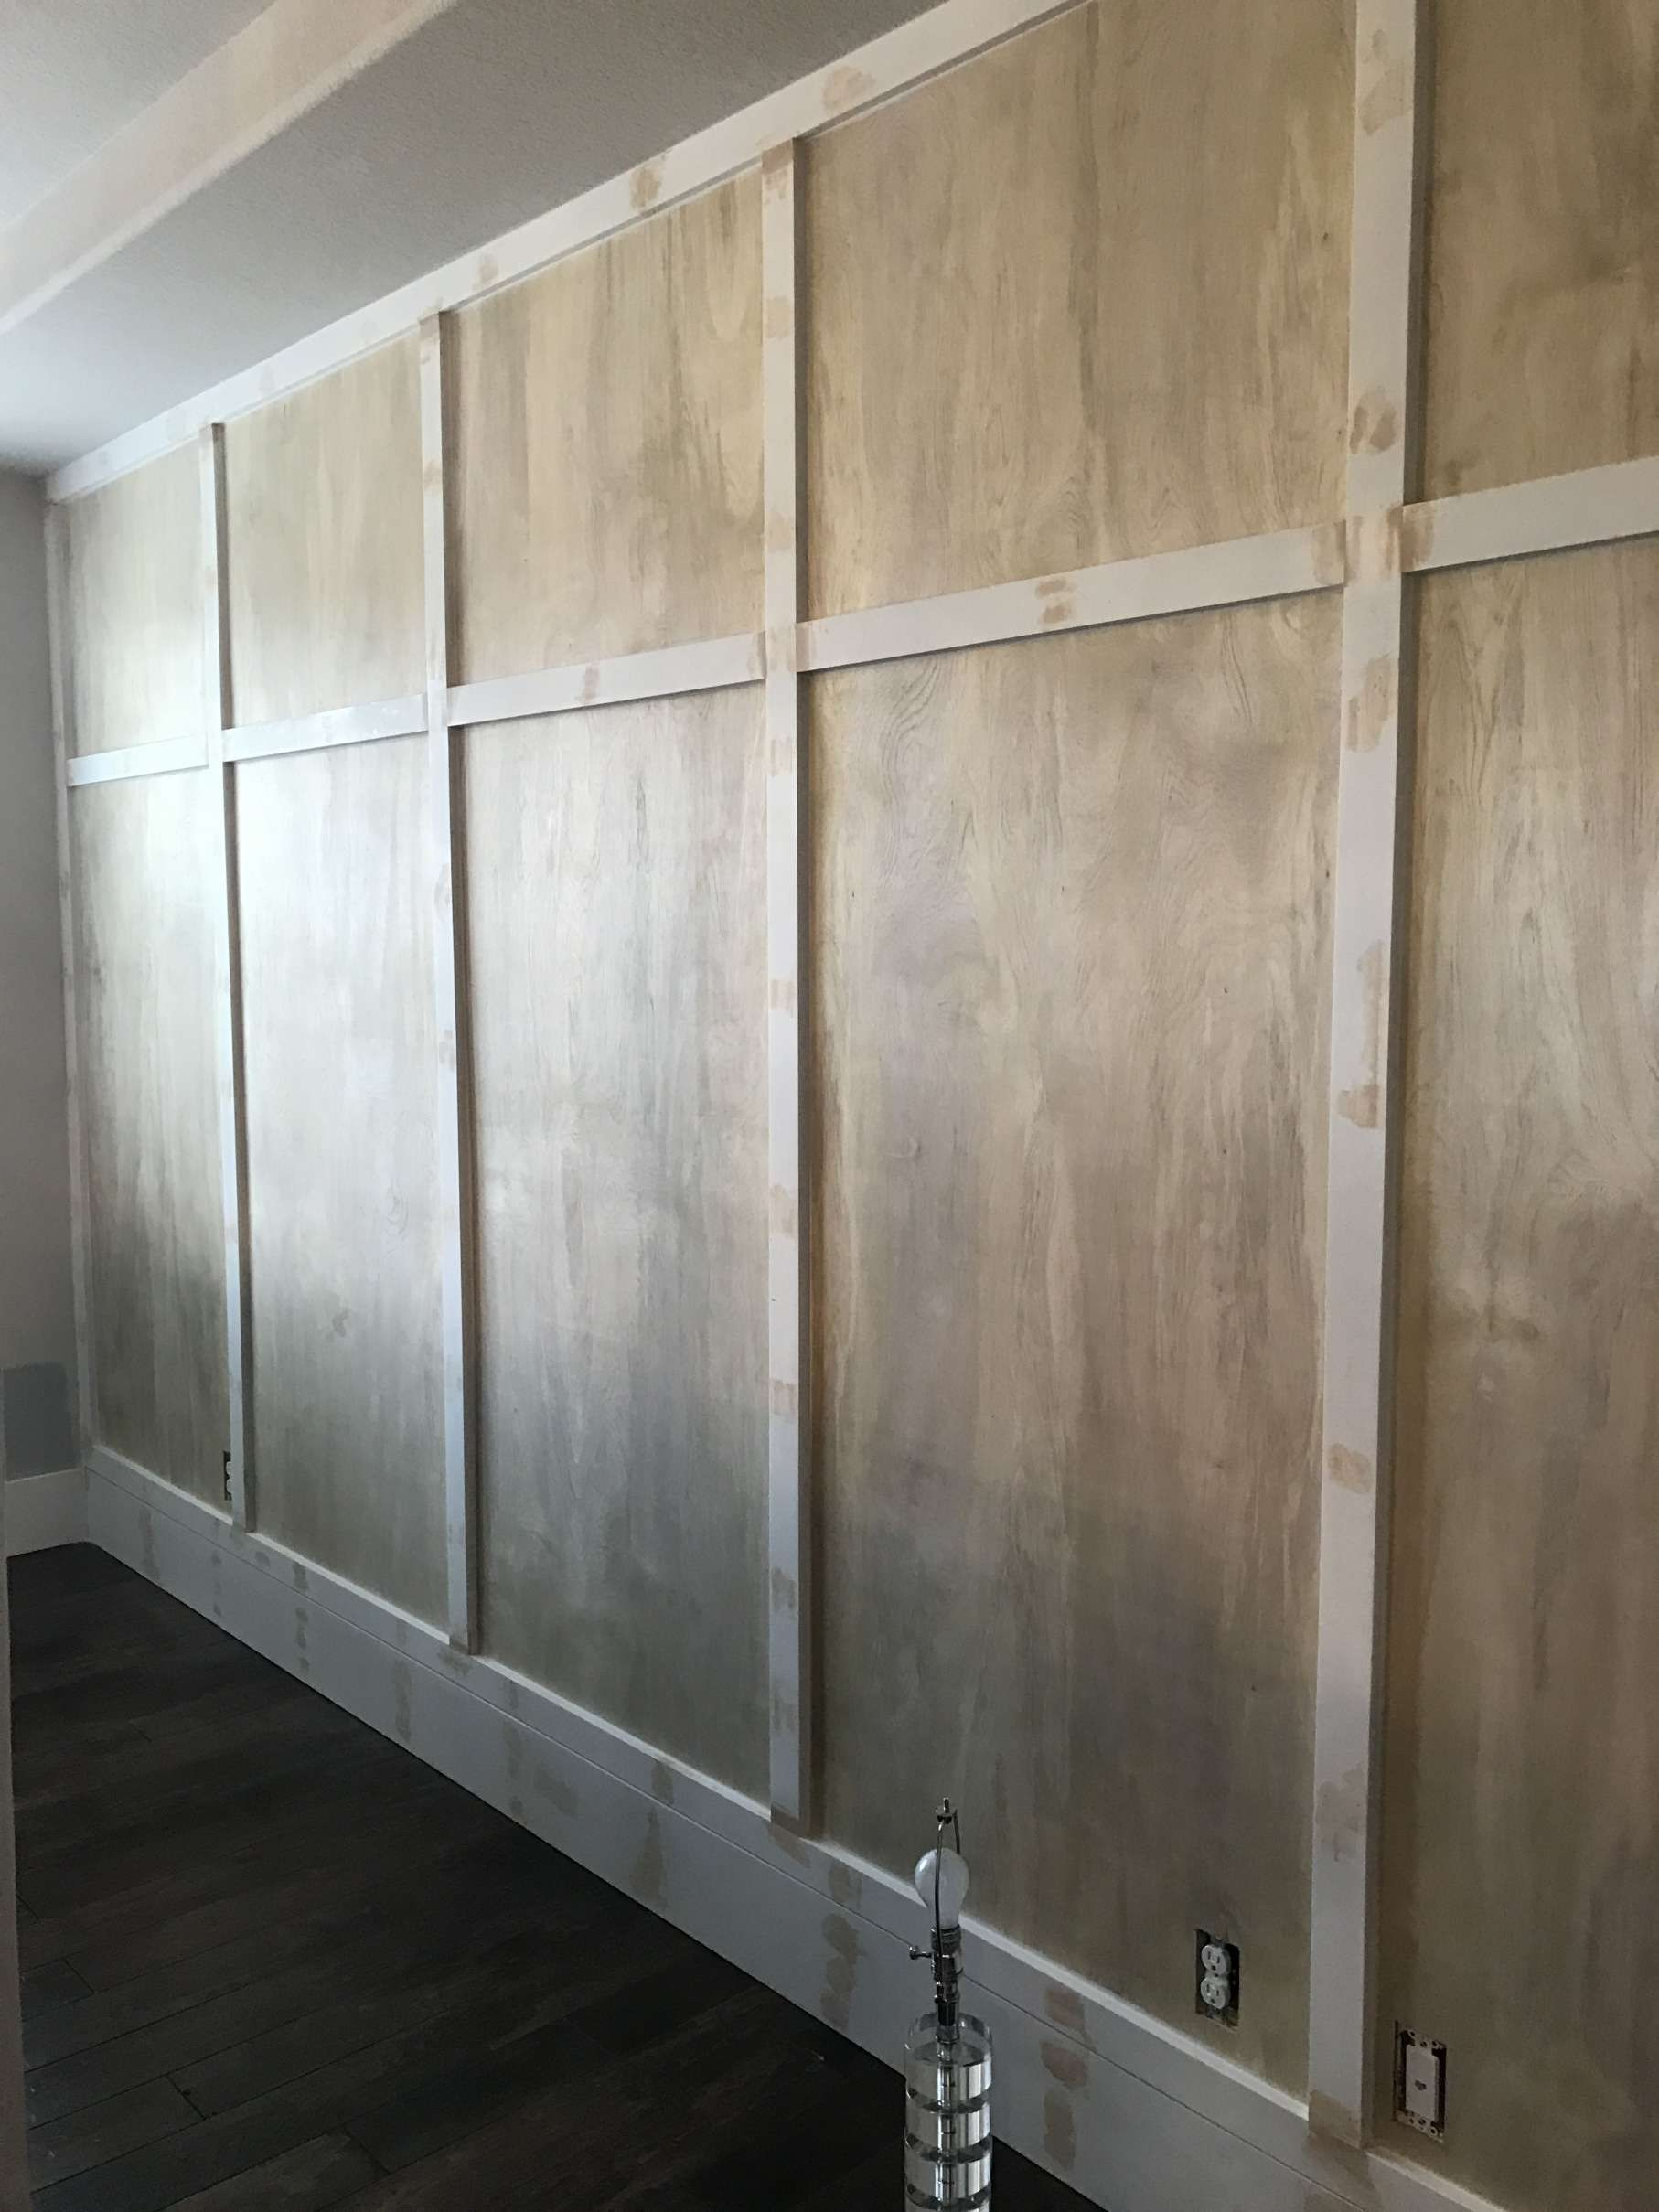 11 Romantic Covering Garage Walls With Plywood Gallery In 2020 Garage Walls Wooden Wall Design Plywood Walls